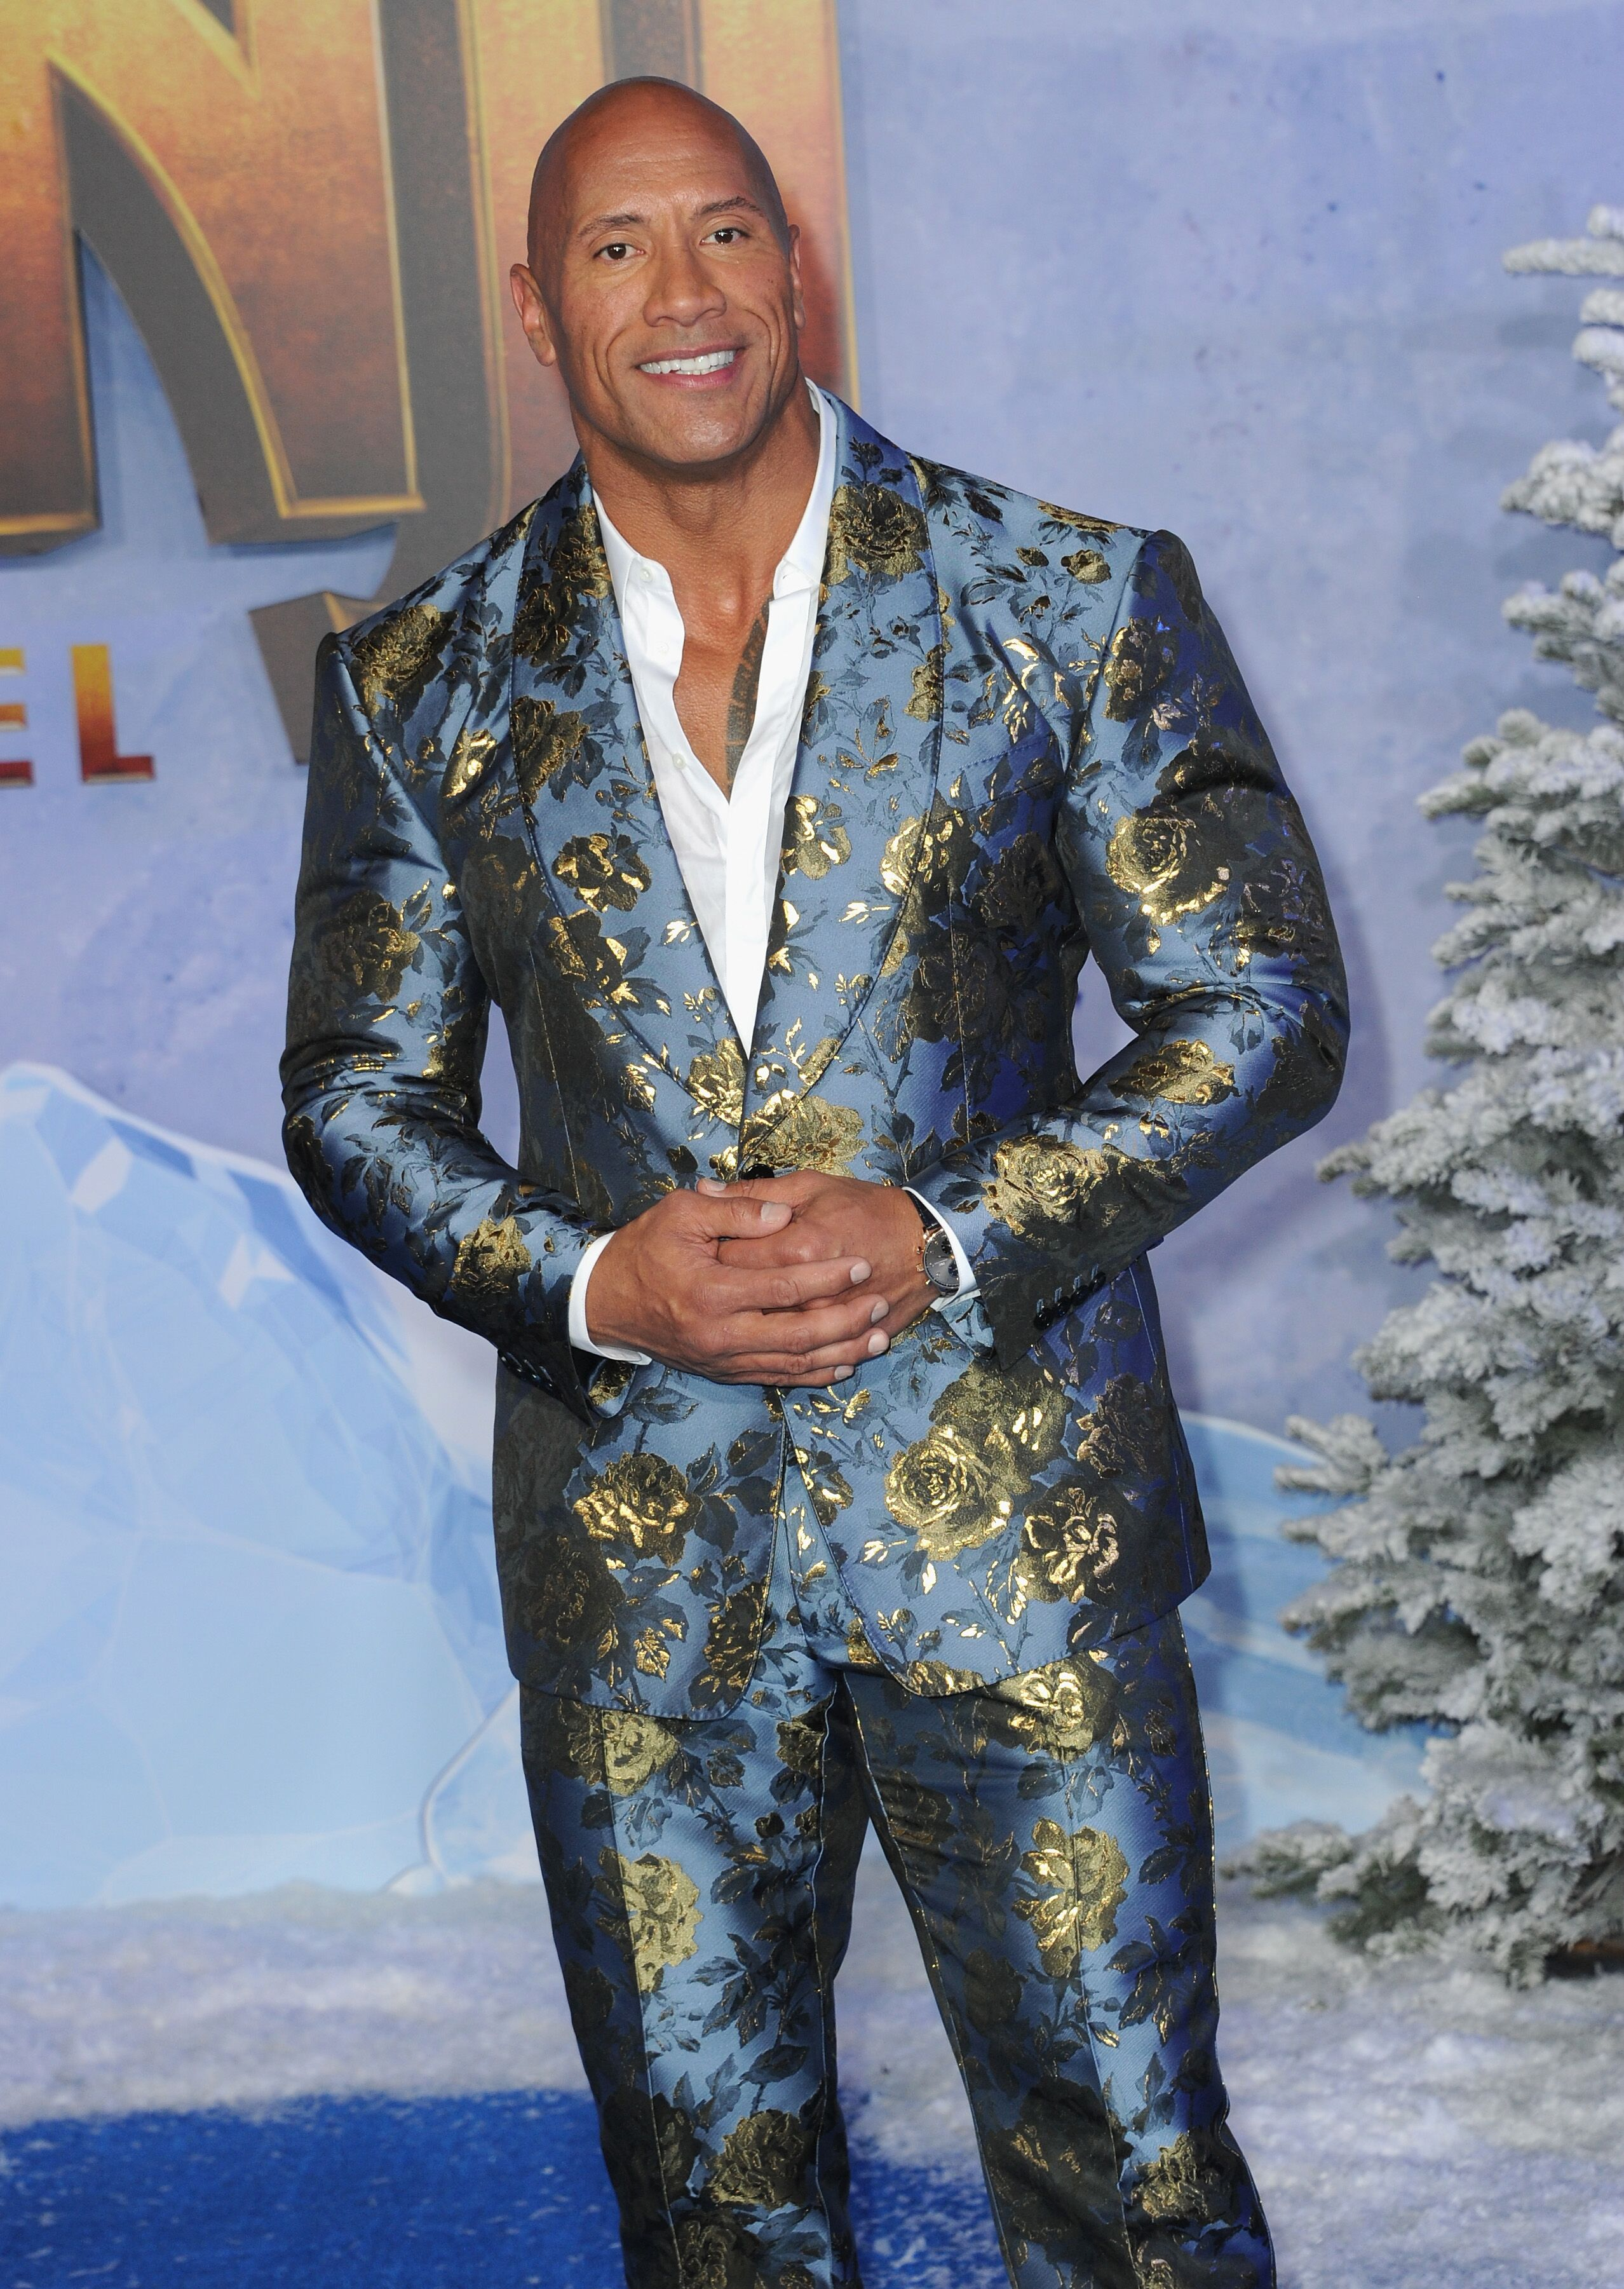 """Dwayne Johnson at the premiere of """"Jumanji: The Next Level"""" on December 9, 2019, in Hollywood, California 